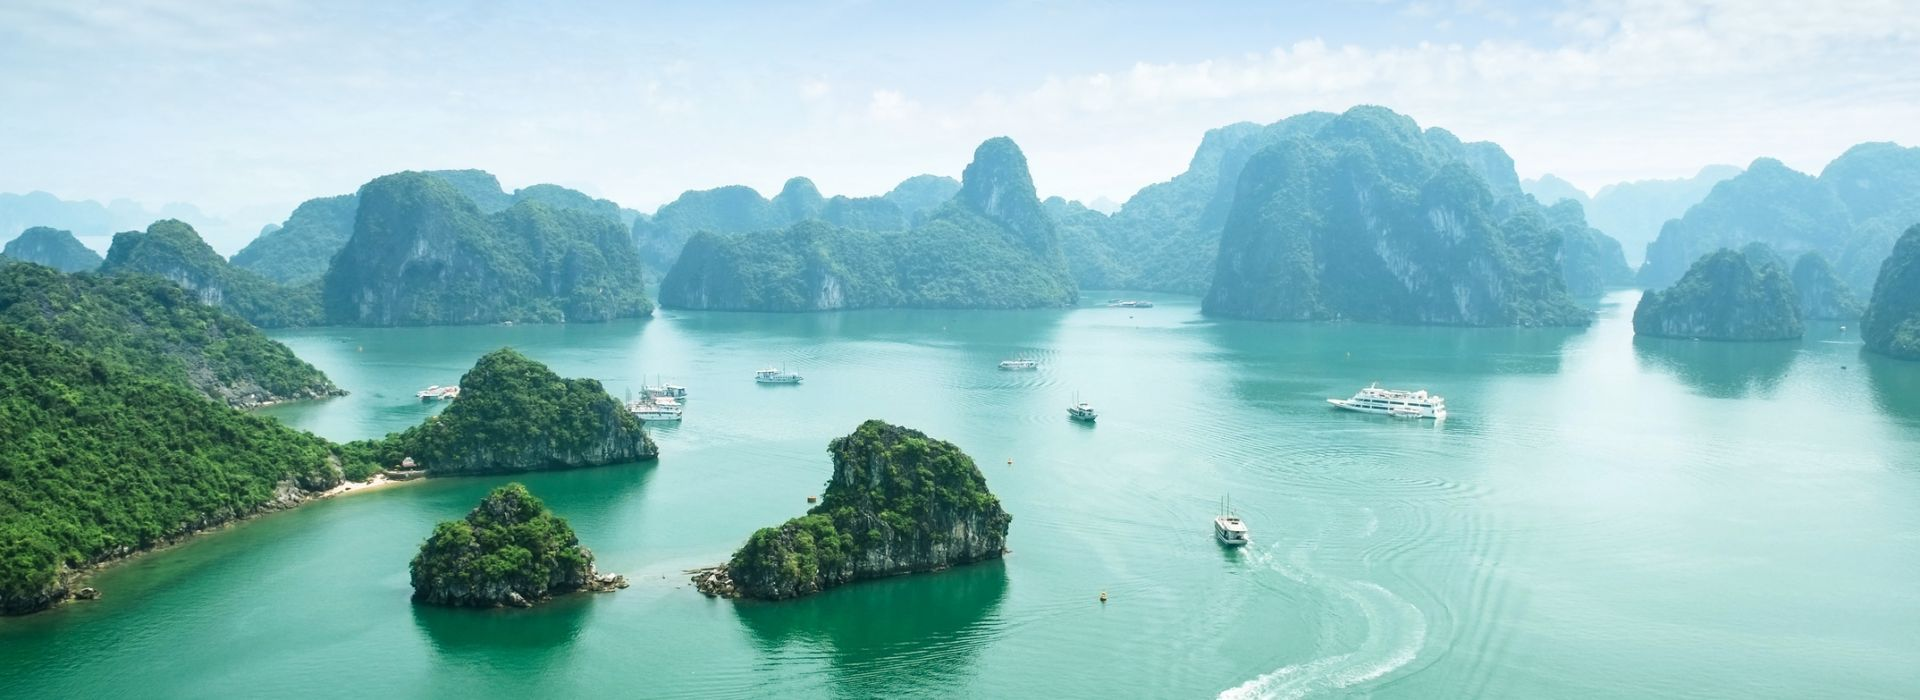 Local boat rides Tours in Vietnam